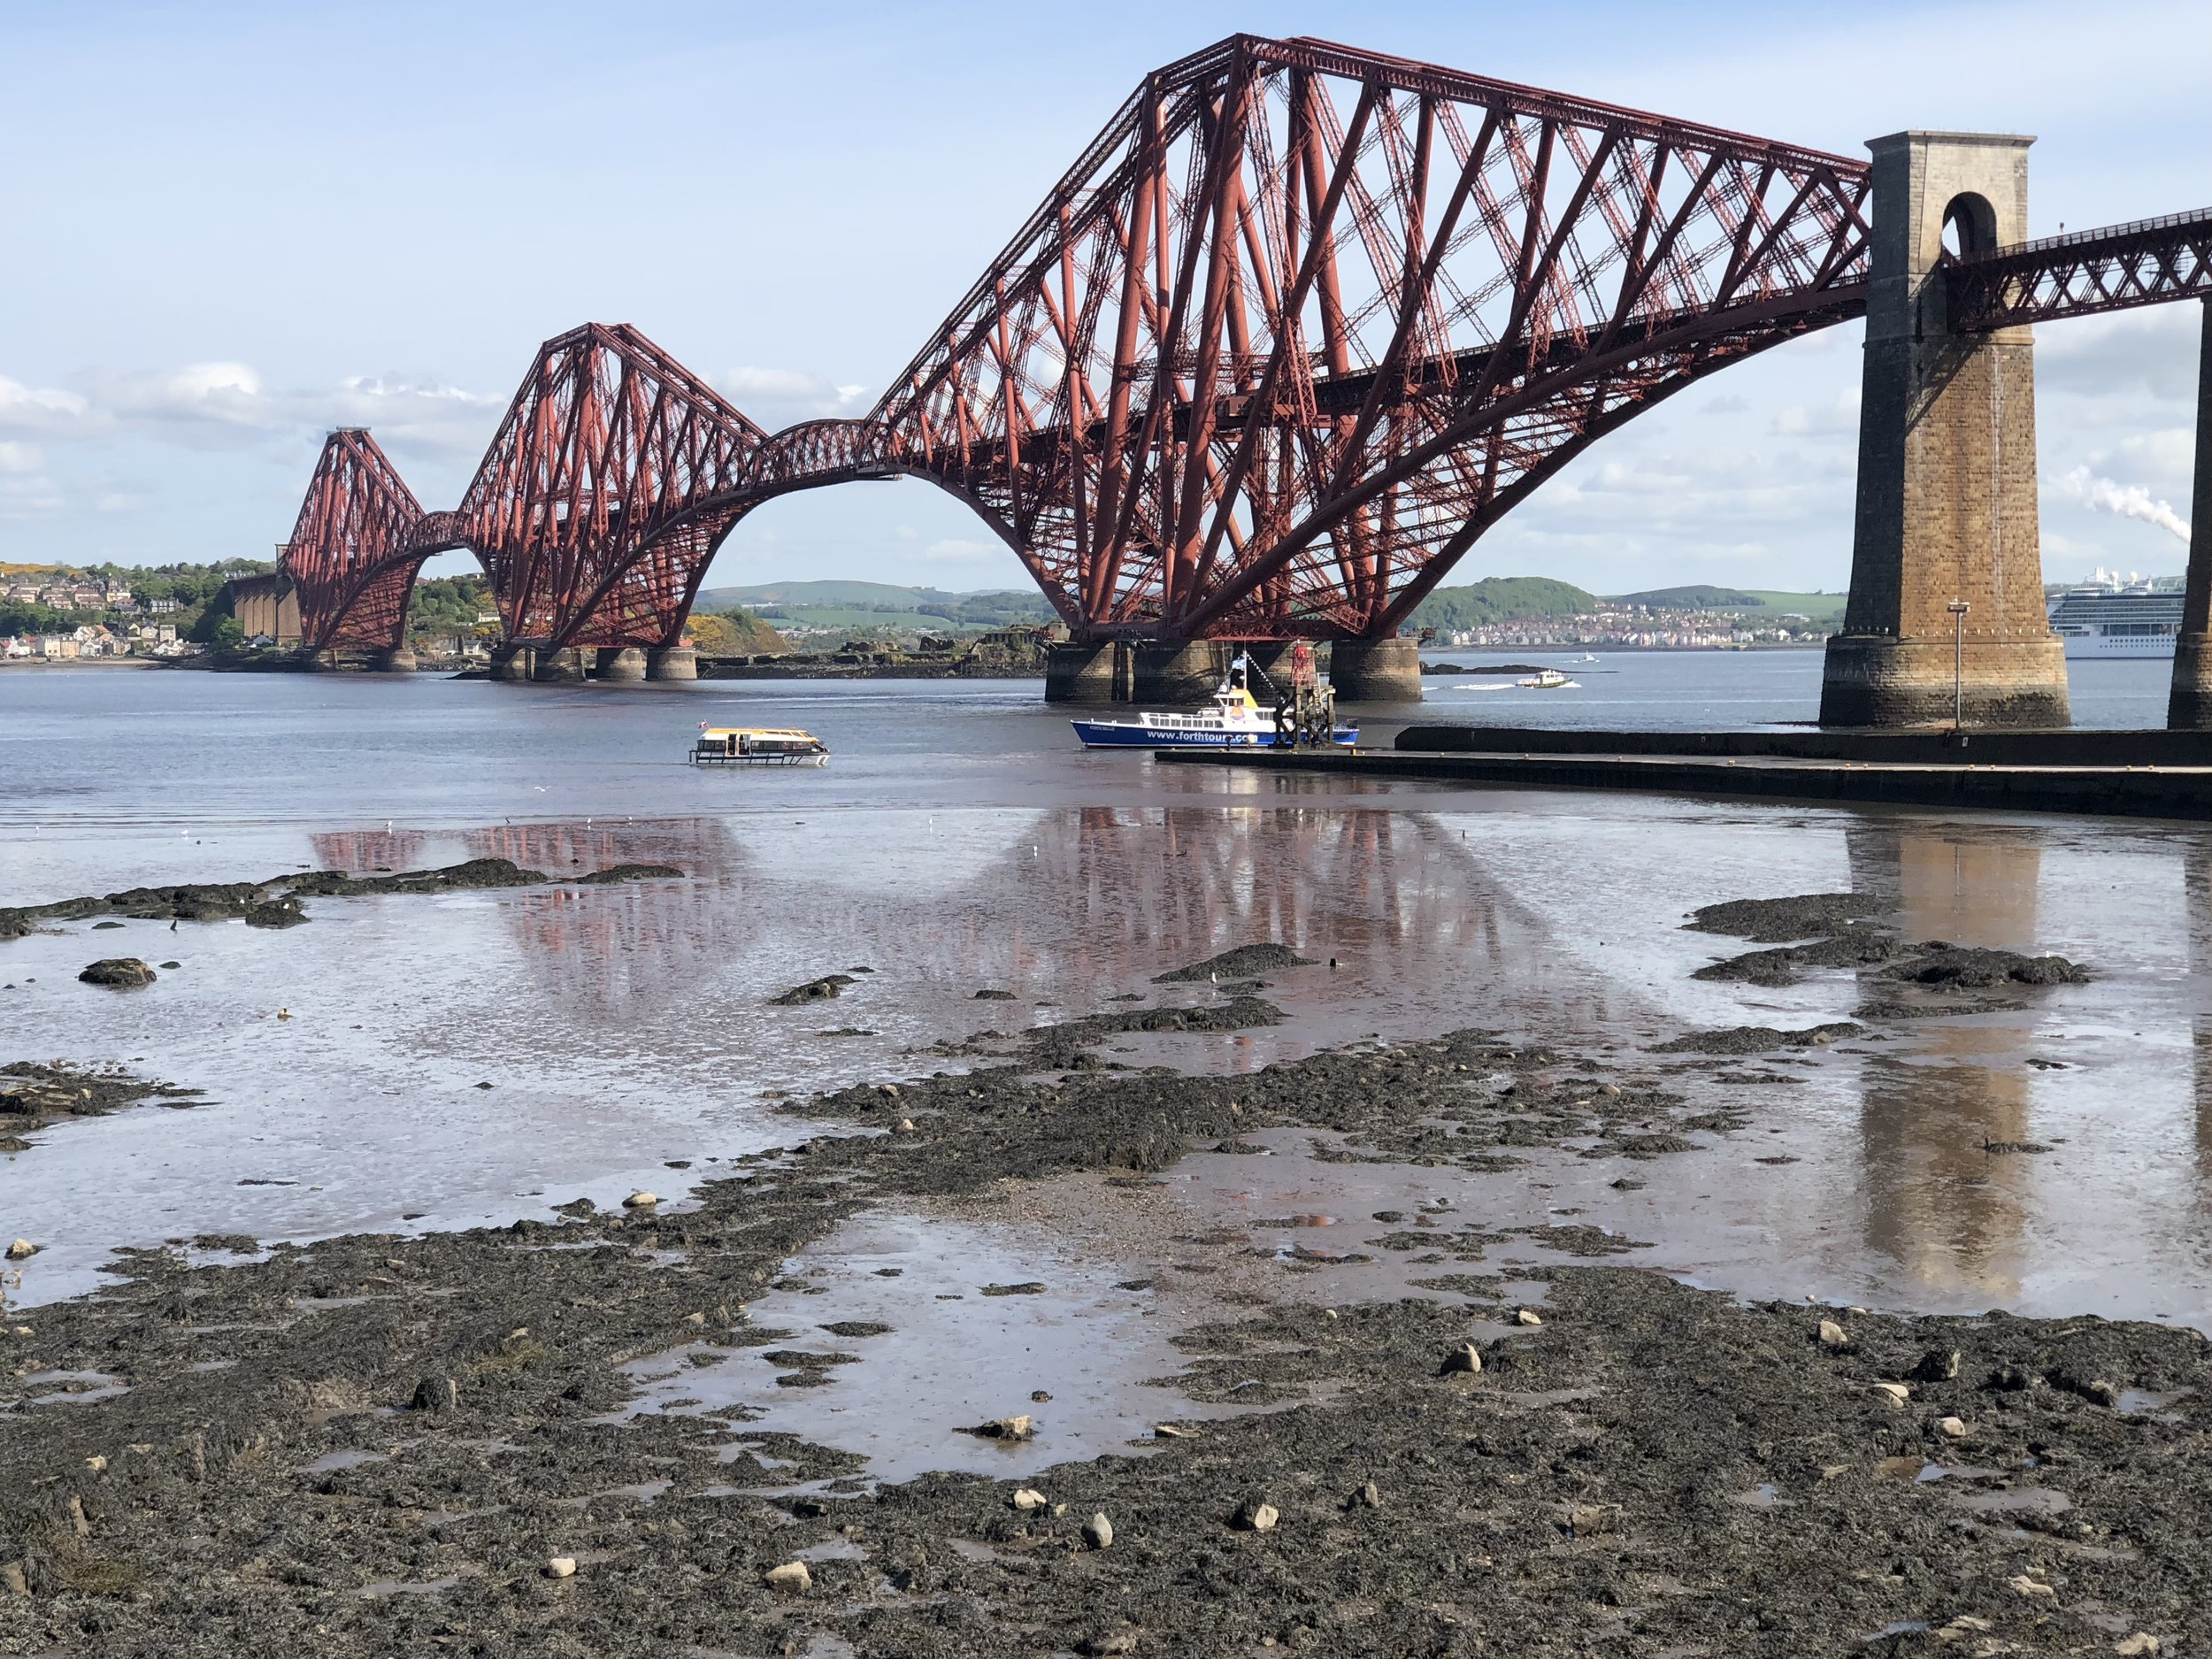 The Firth of Forth Bridge